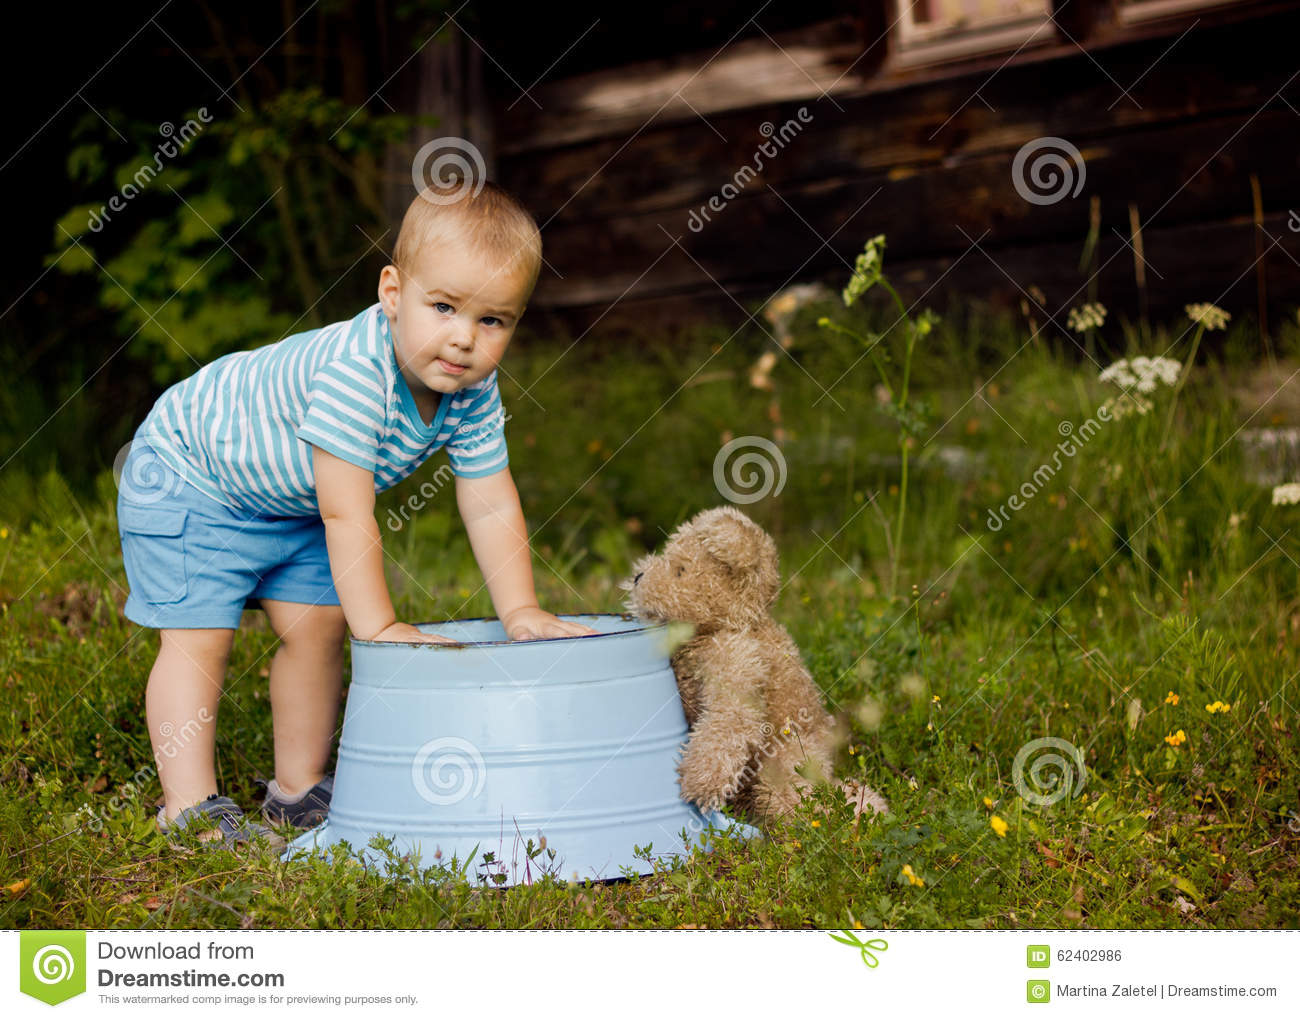 toddler remote control airplane with Little Boy Playing His Teddy Bear on How To Design Perfect Invitation besides Glenmont Pool Quality Inn Suites South Pool Glenmont Pool Md besides 2689335 Okla Heartland Classic Car And Bike Show Lots Of Pics also When To Plant Crape Myrtle Quart Size Dynamite Crape Myrtle Showy Glorious Fire Red Flowers Growing Crape Myrtle Cuttings also Wiben Jurassic Velociraptor Dinosaur Action Toy Figures.